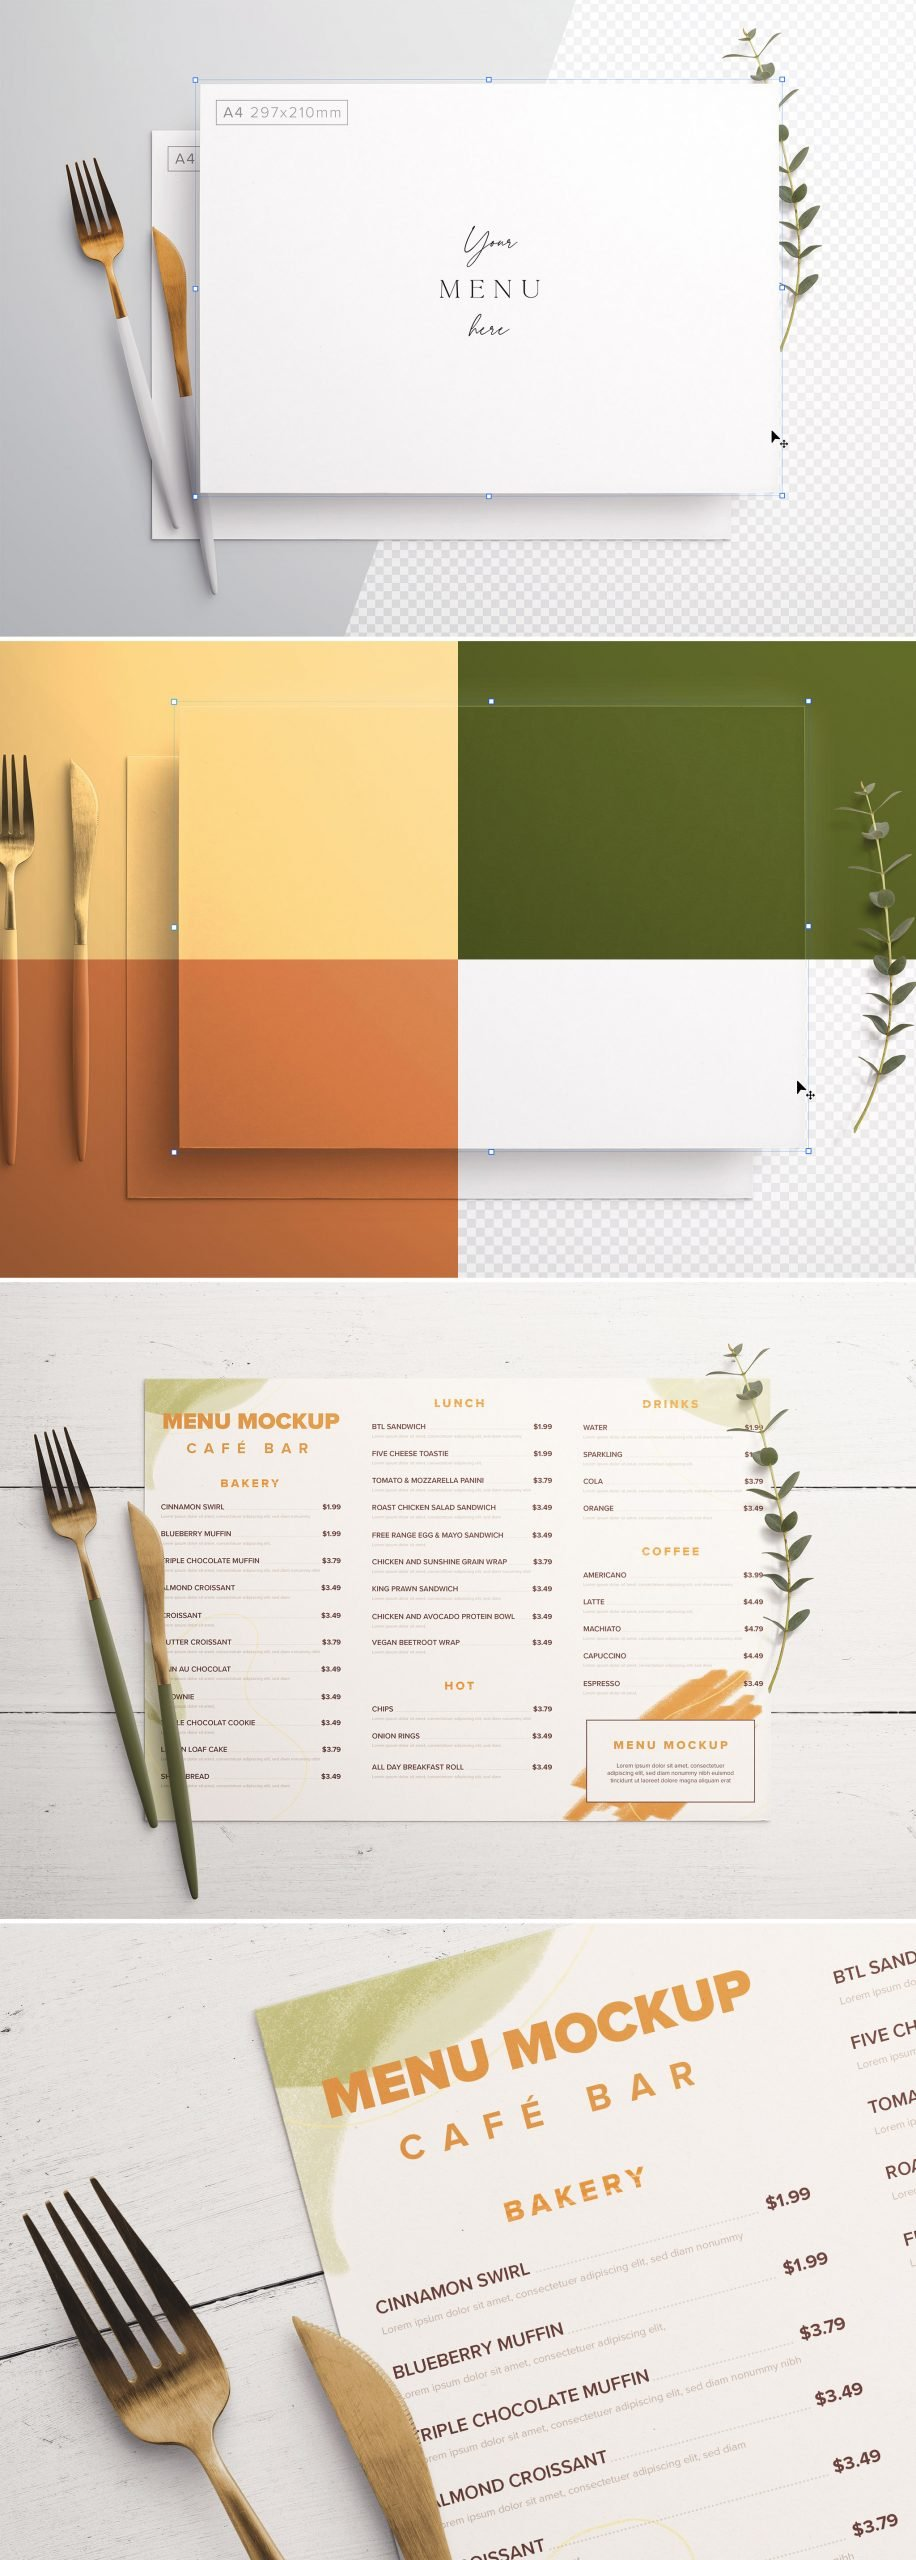 Table A4 Menu with Cutleries And Eucalyptus Preview scaled